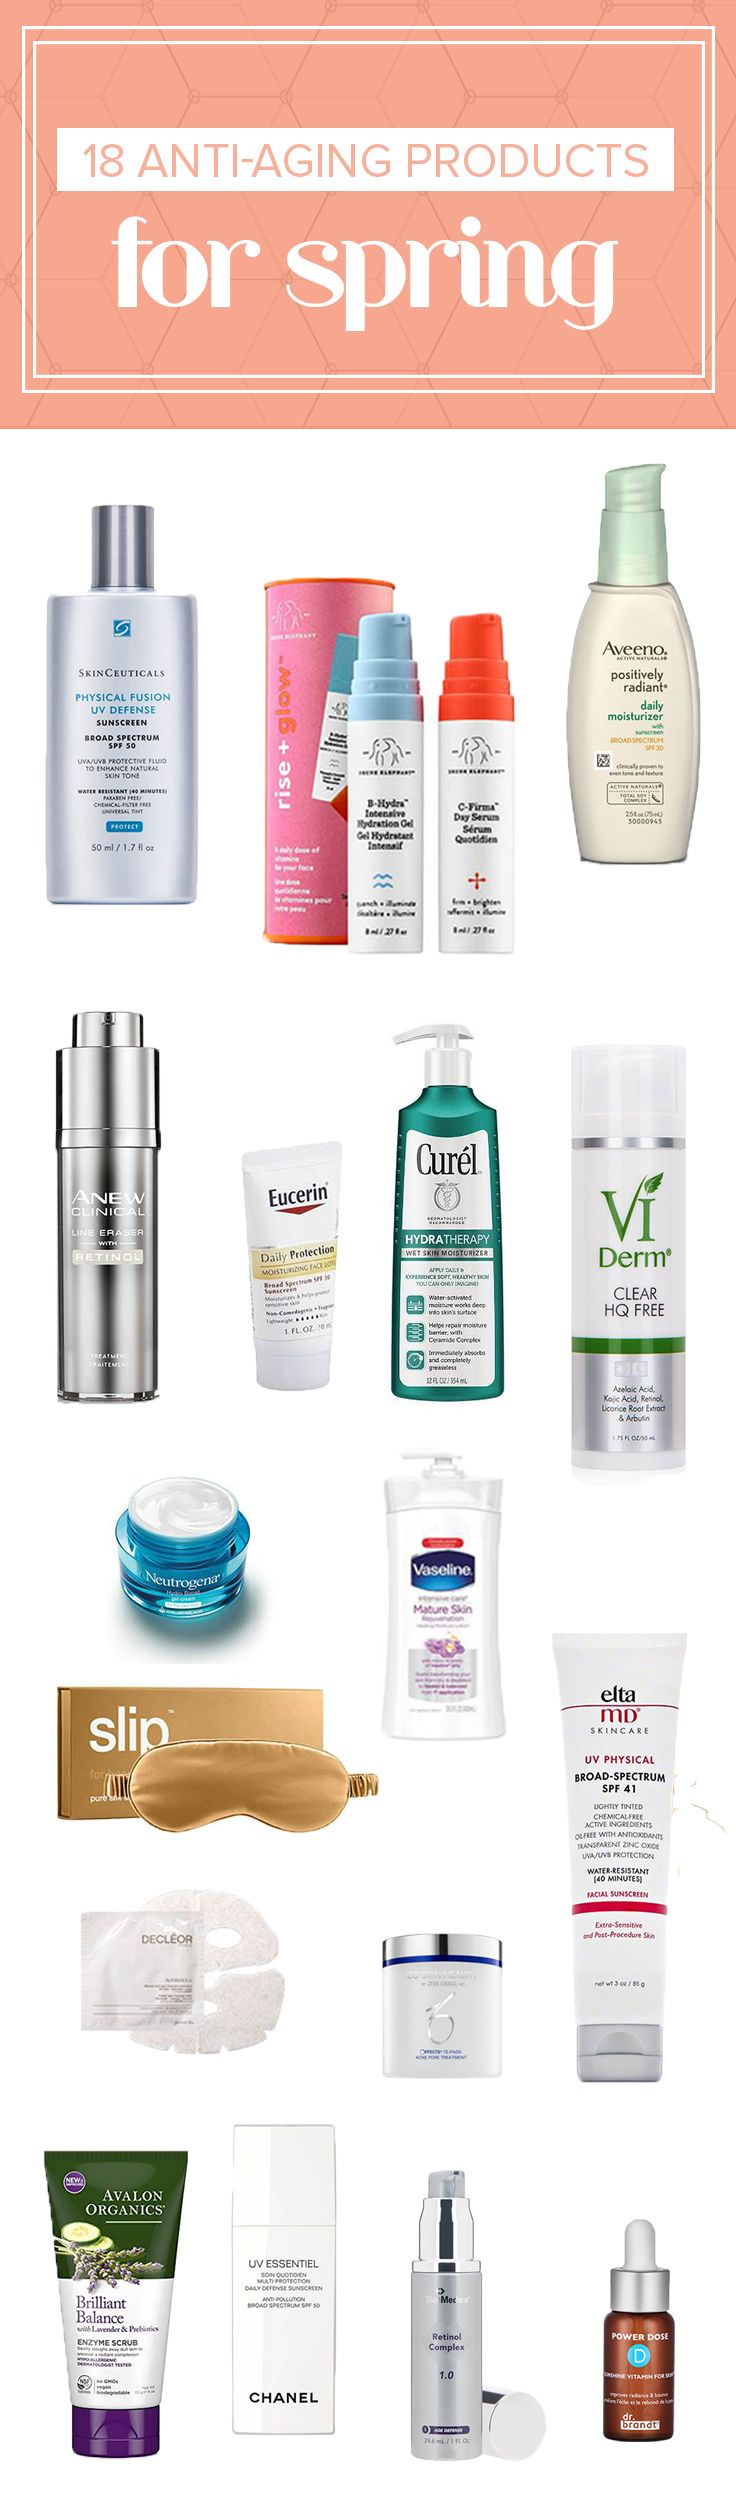 Try these anit-aging products that are available at your drugstore to improve your skin care routine. They are all dermatologist recommended.